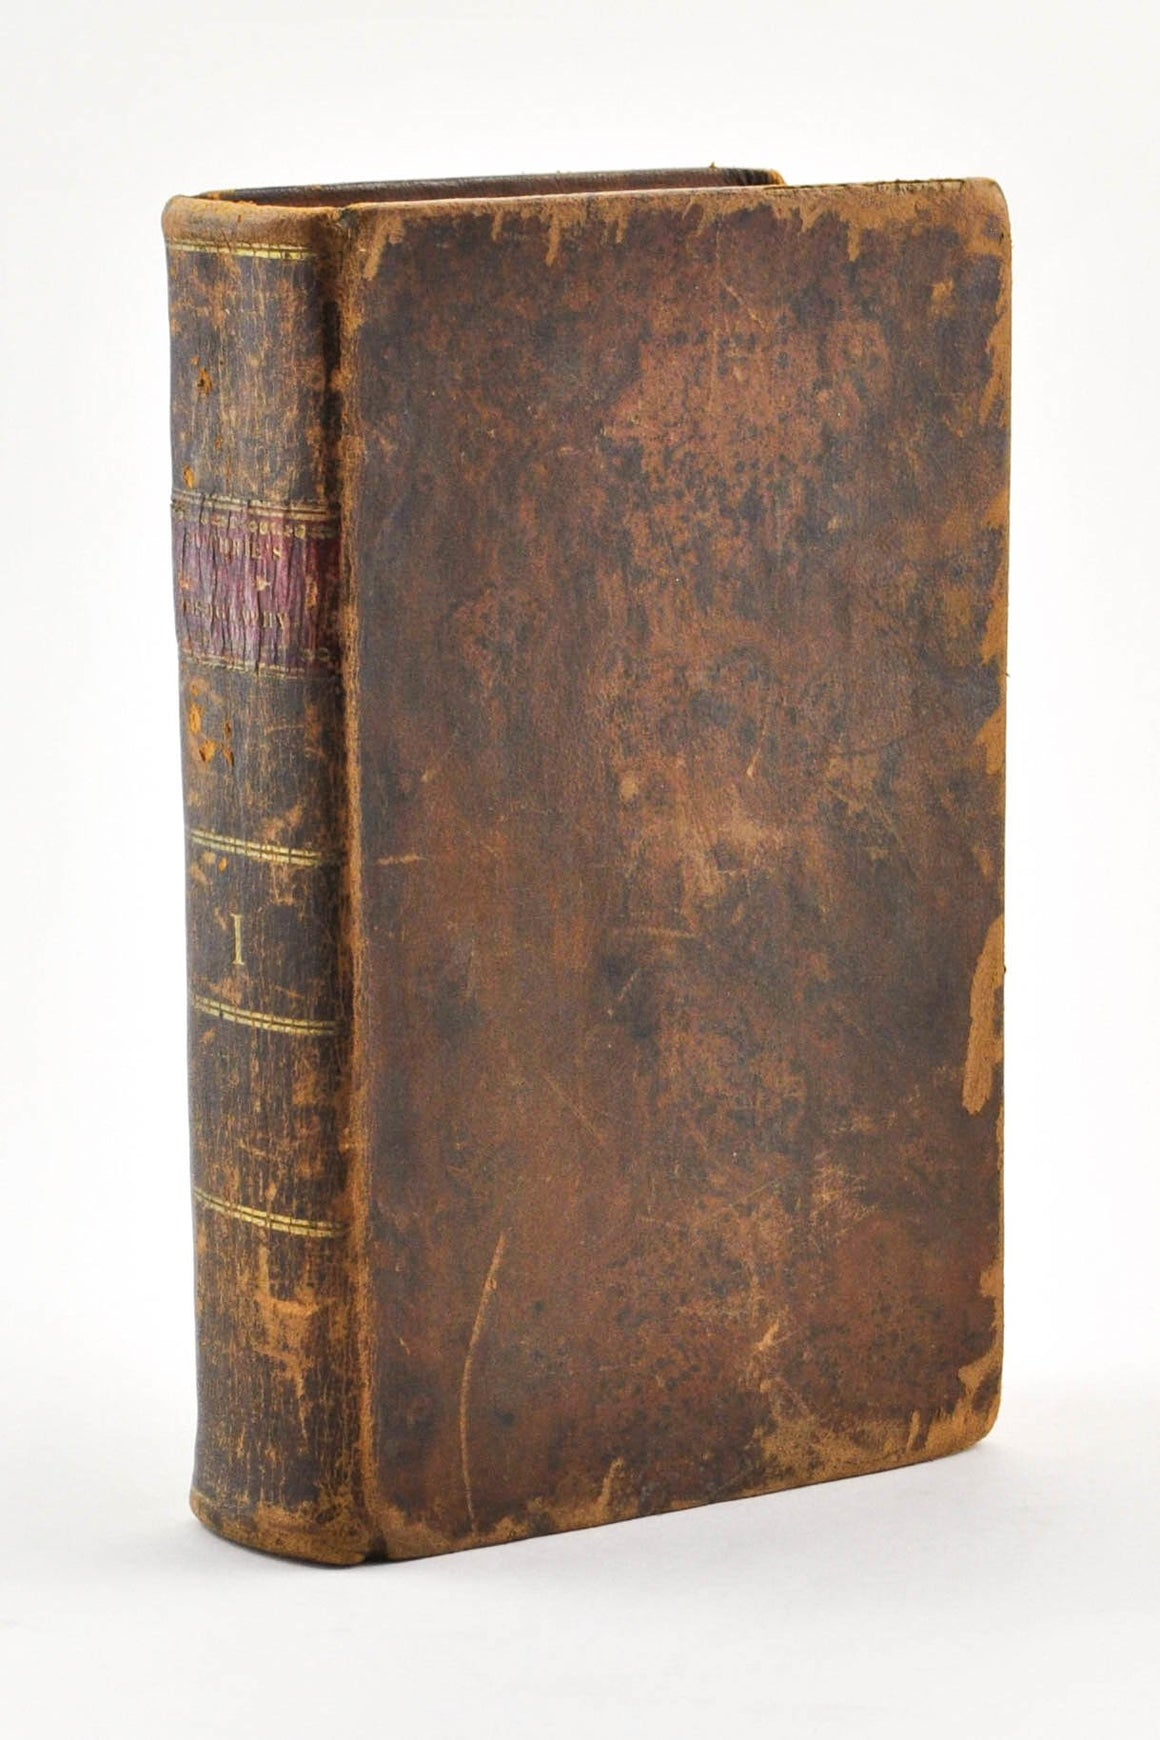 A New Geographical Historical and Commercial Grammar by William Guthrie 1809